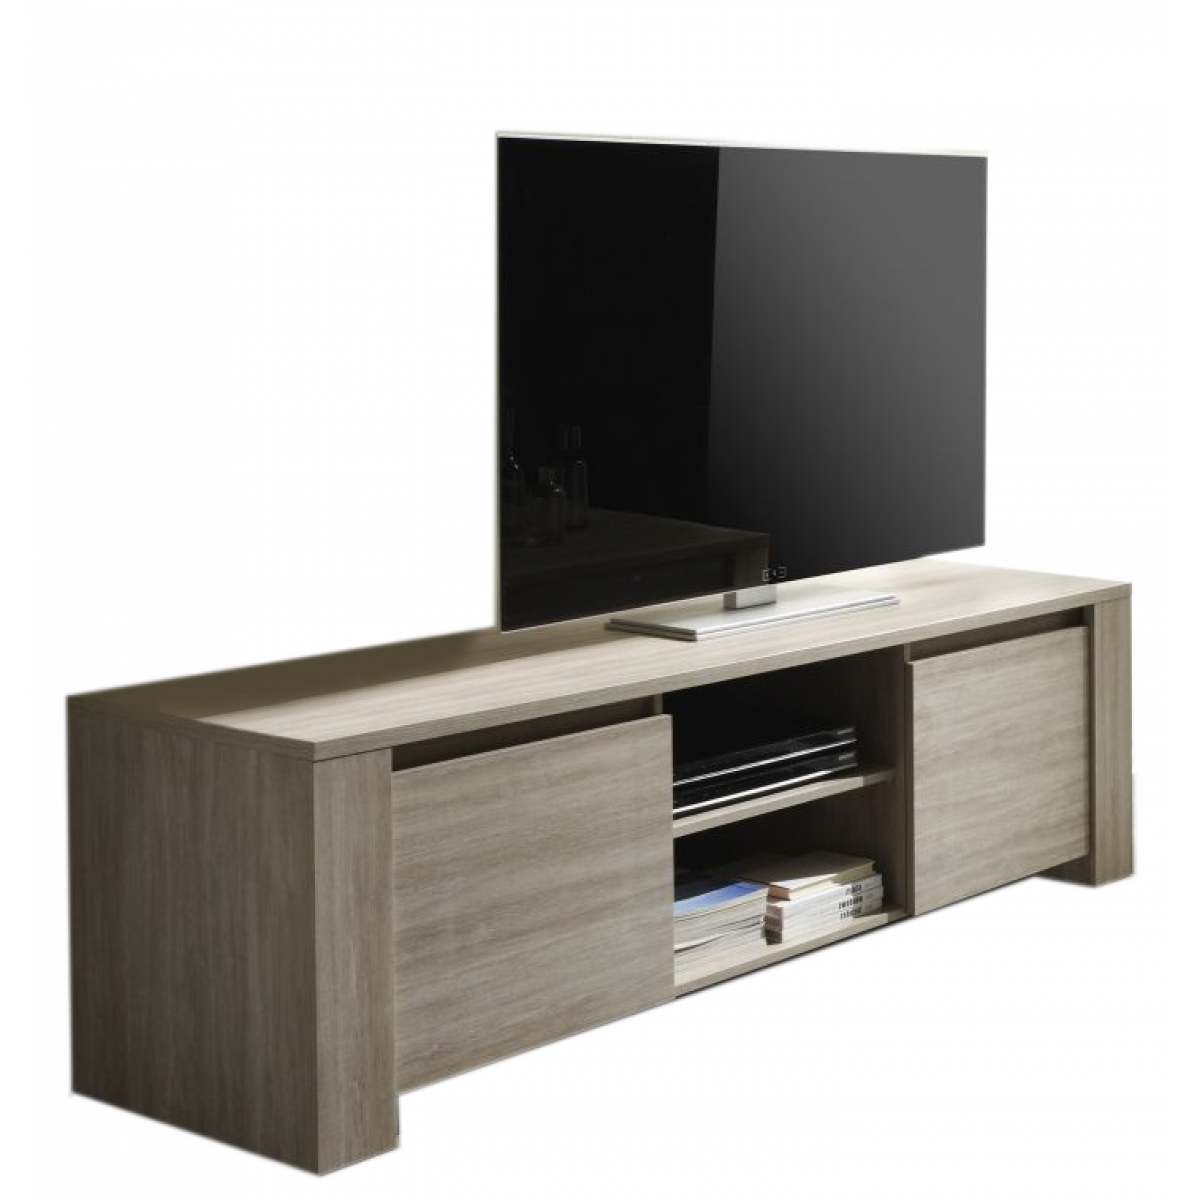 meuble tv transparent pas cher sammlung von design zeichnungen als inspirierendes. Black Bedroom Furniture Sets. Home Design Ideas